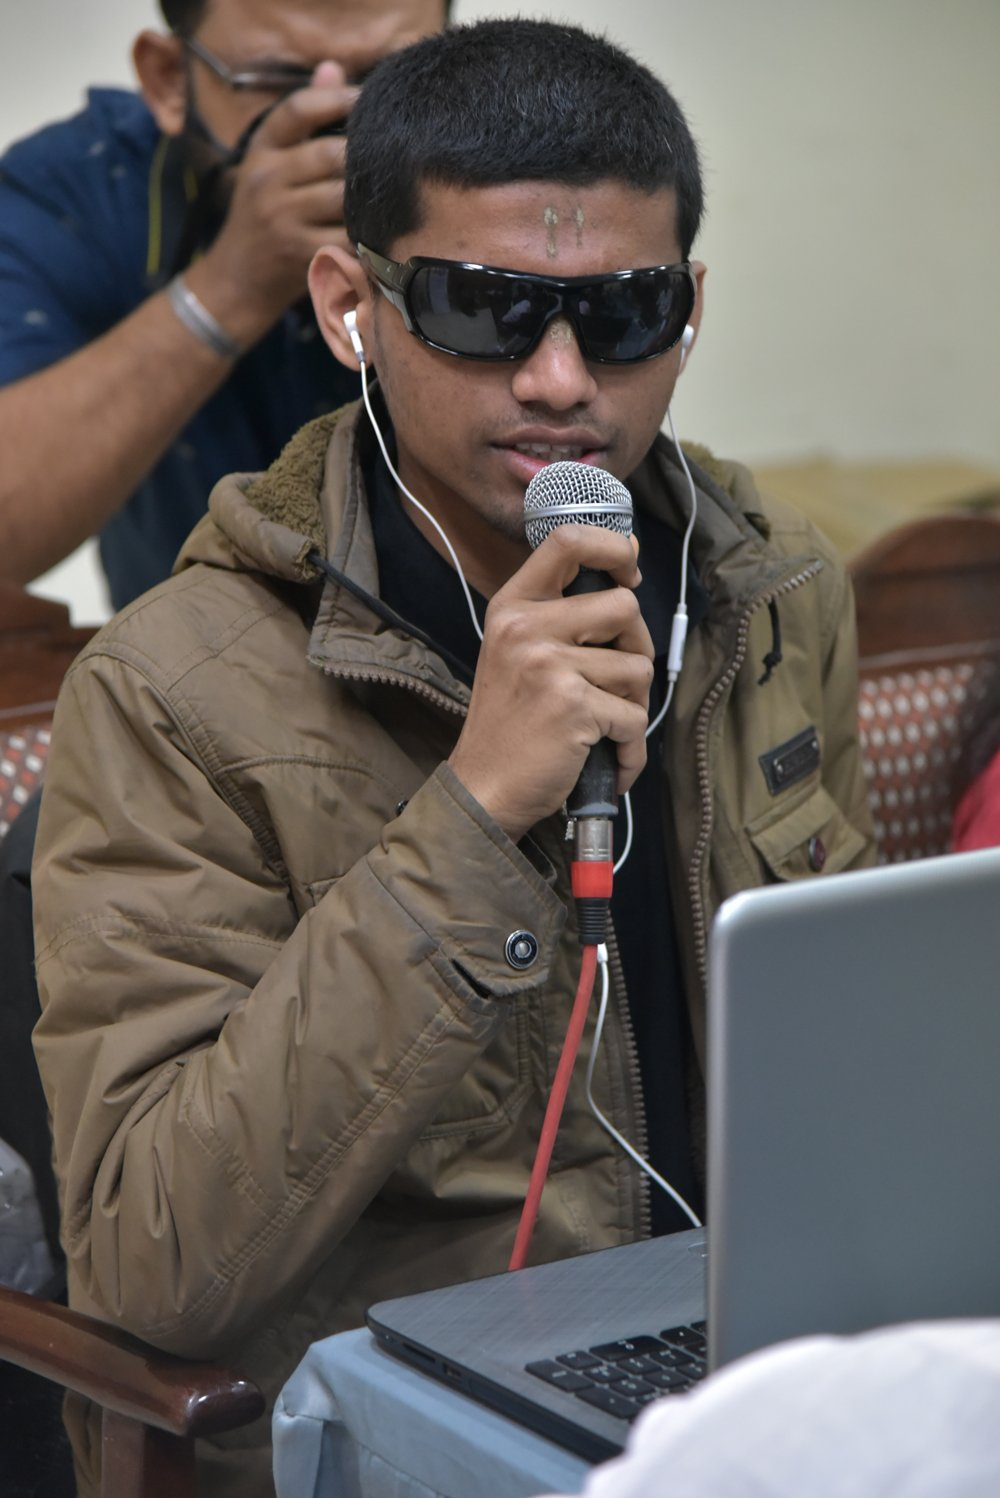 A young man is holding a hand held mic and talking. He is wearing black spectacles. There is a laptop in front of him. Someone behind him is clicking a photograph with a camera.